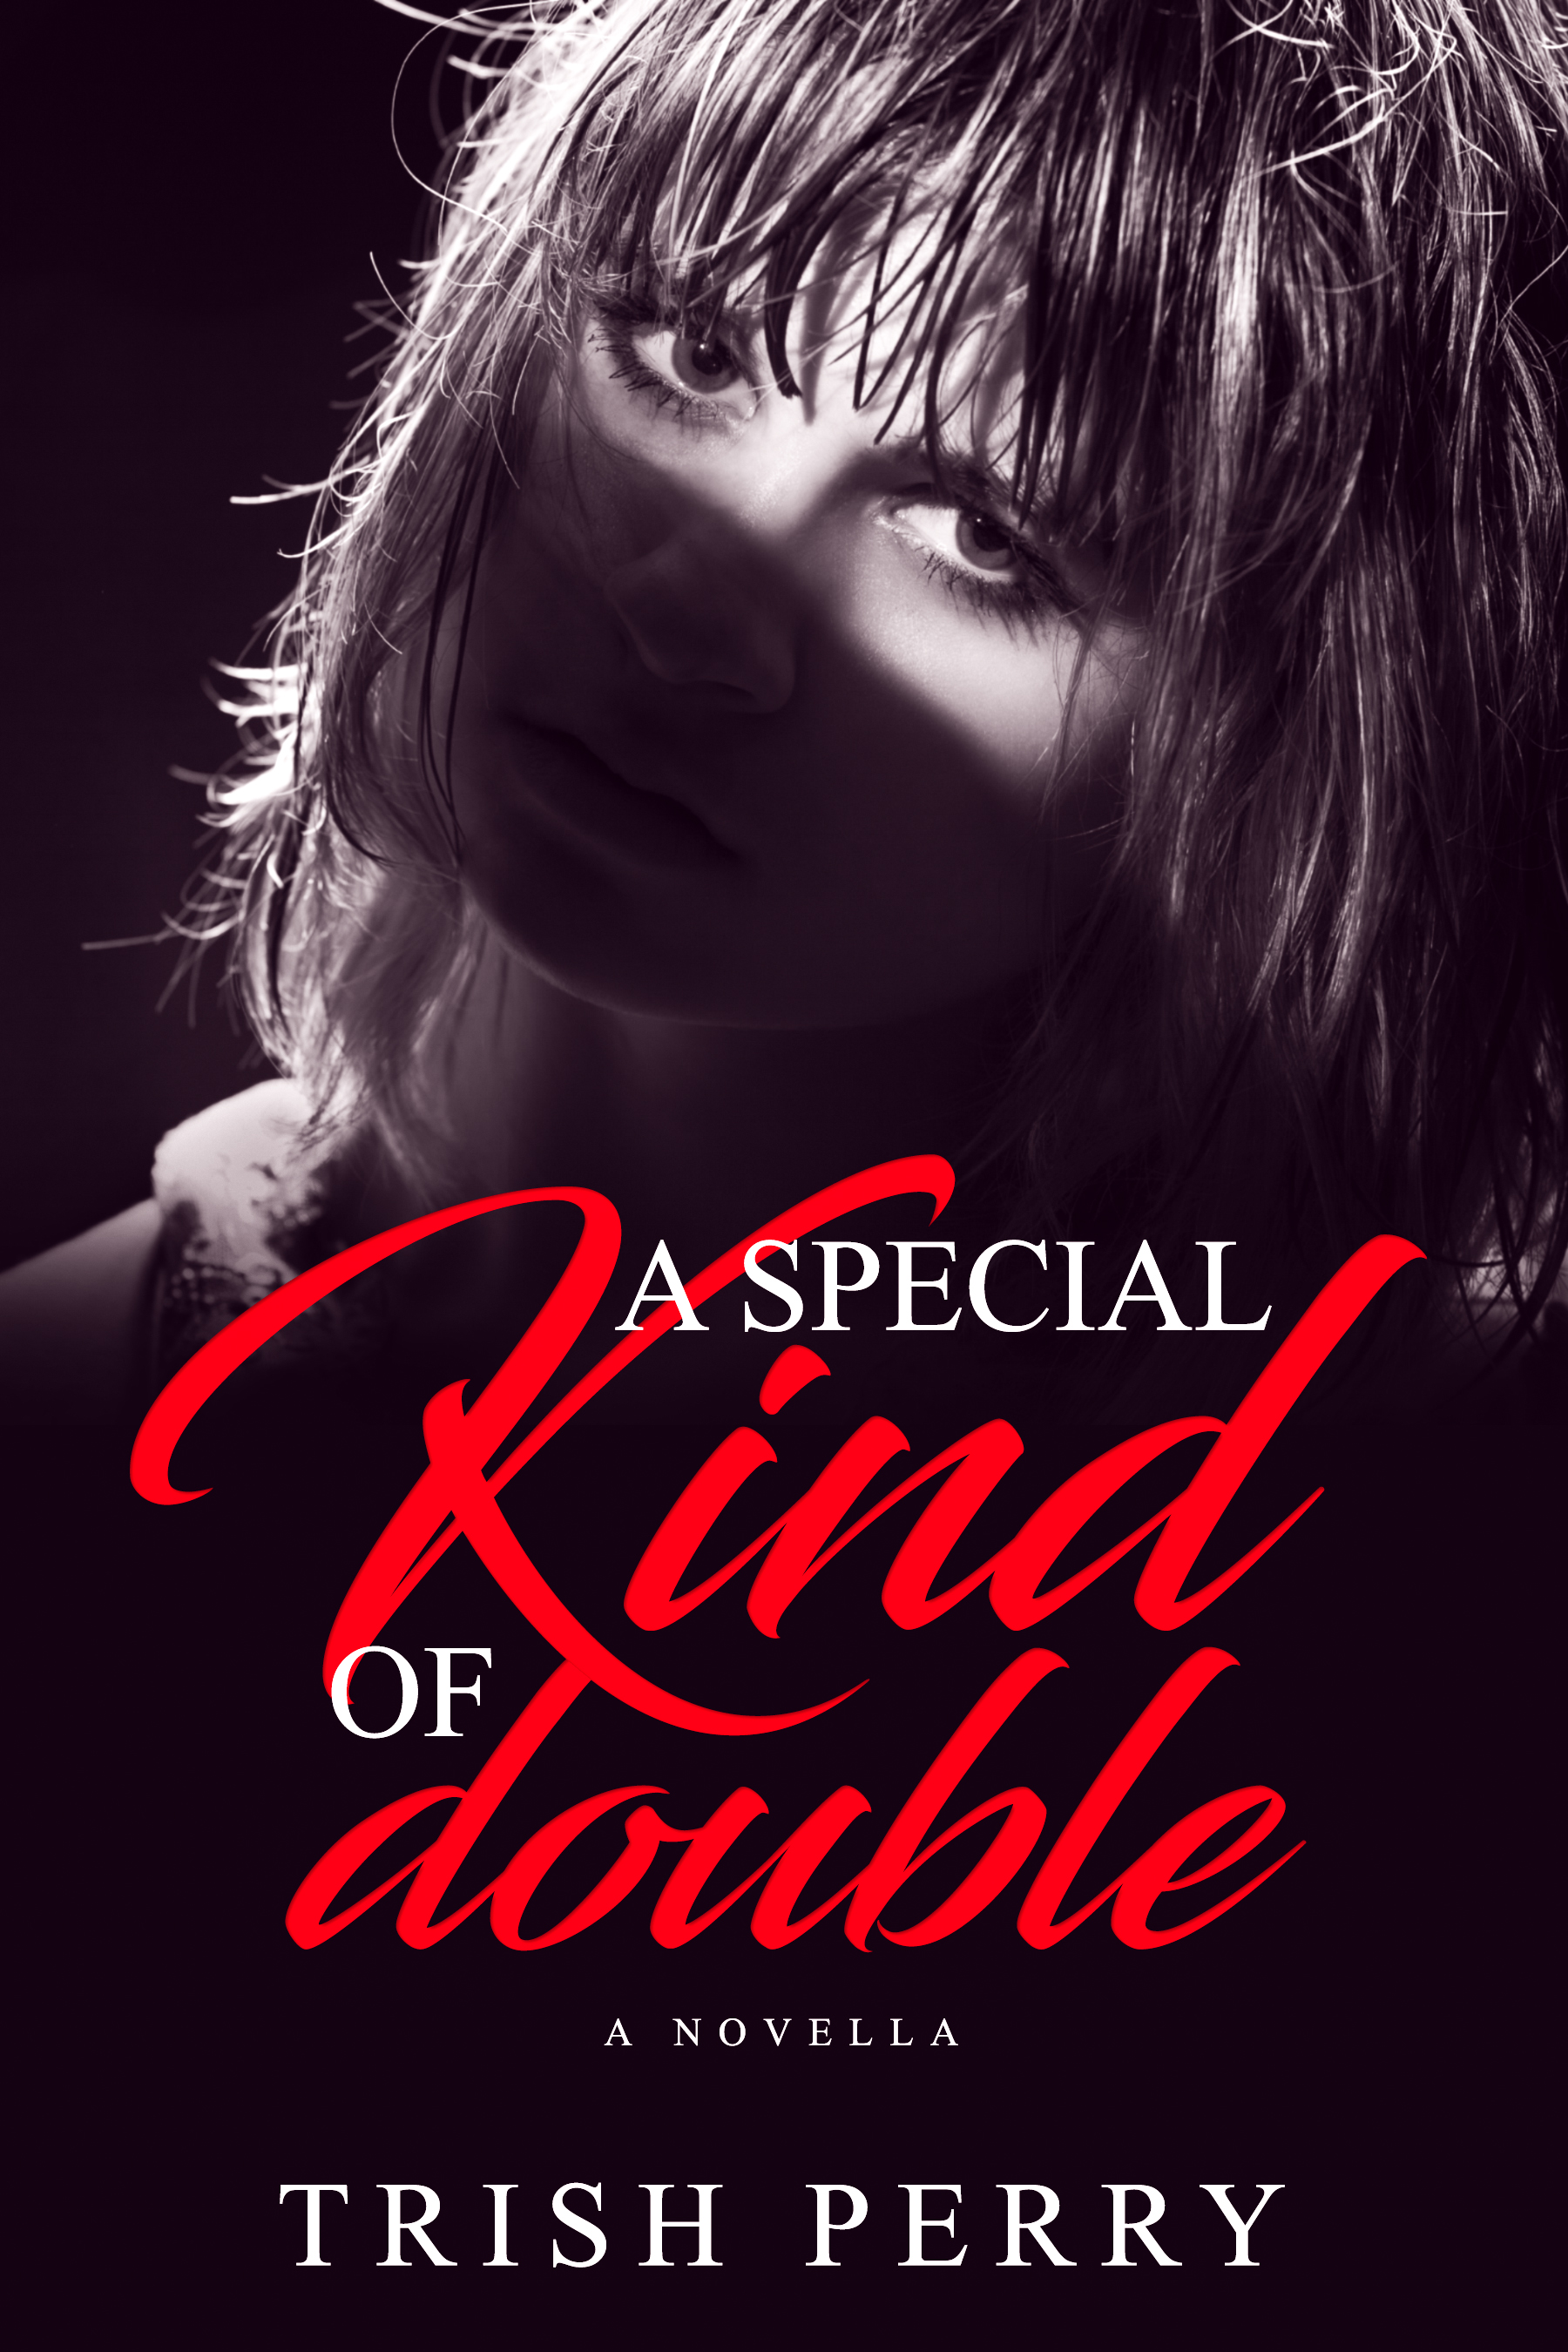 book cover: A Special Kind of Double l